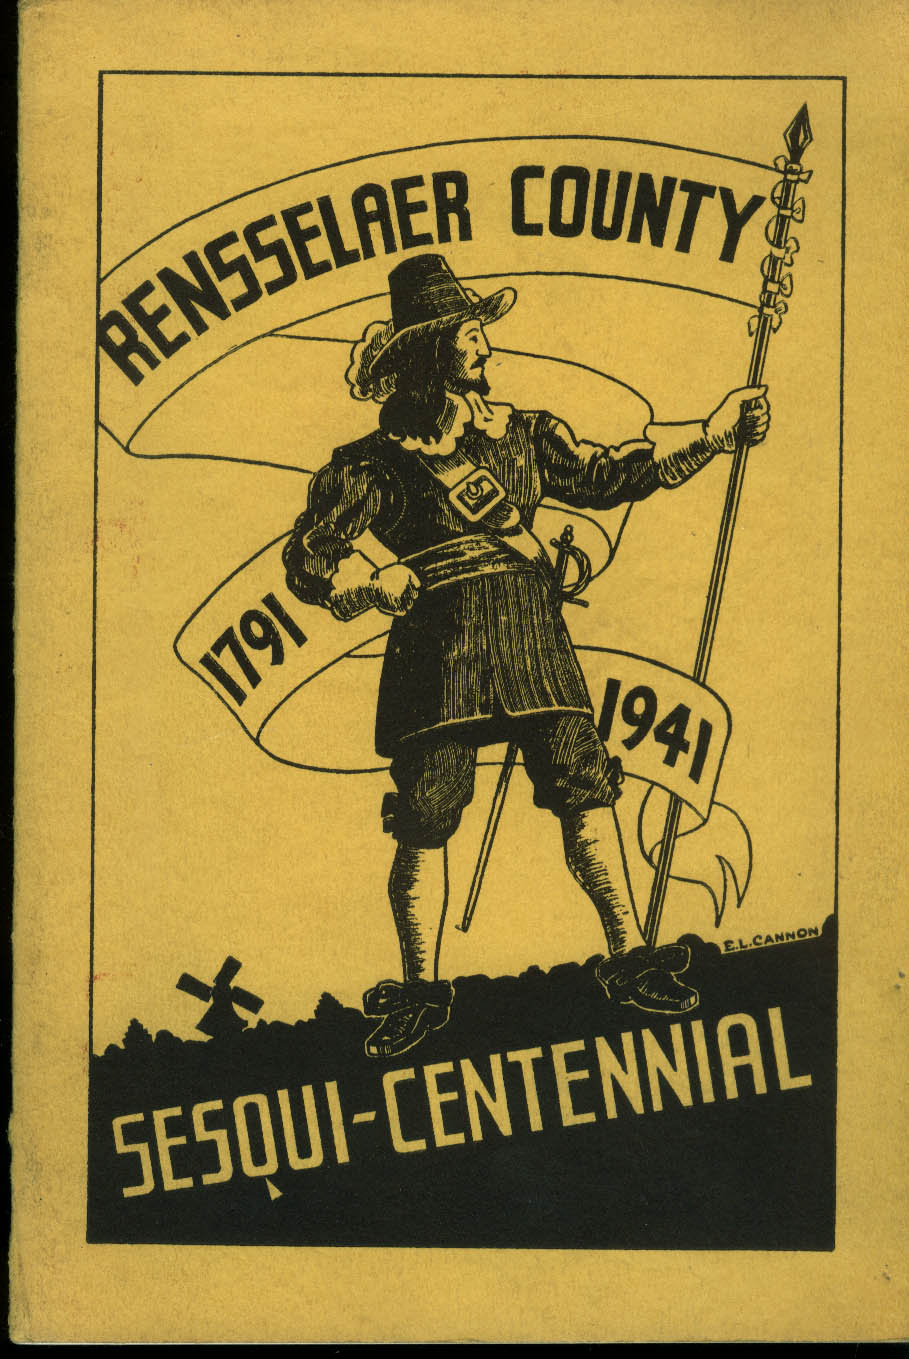 Rensselaer County Sesqui-centennial Prgm 1791-1941 Work Projects Admin WPA NY